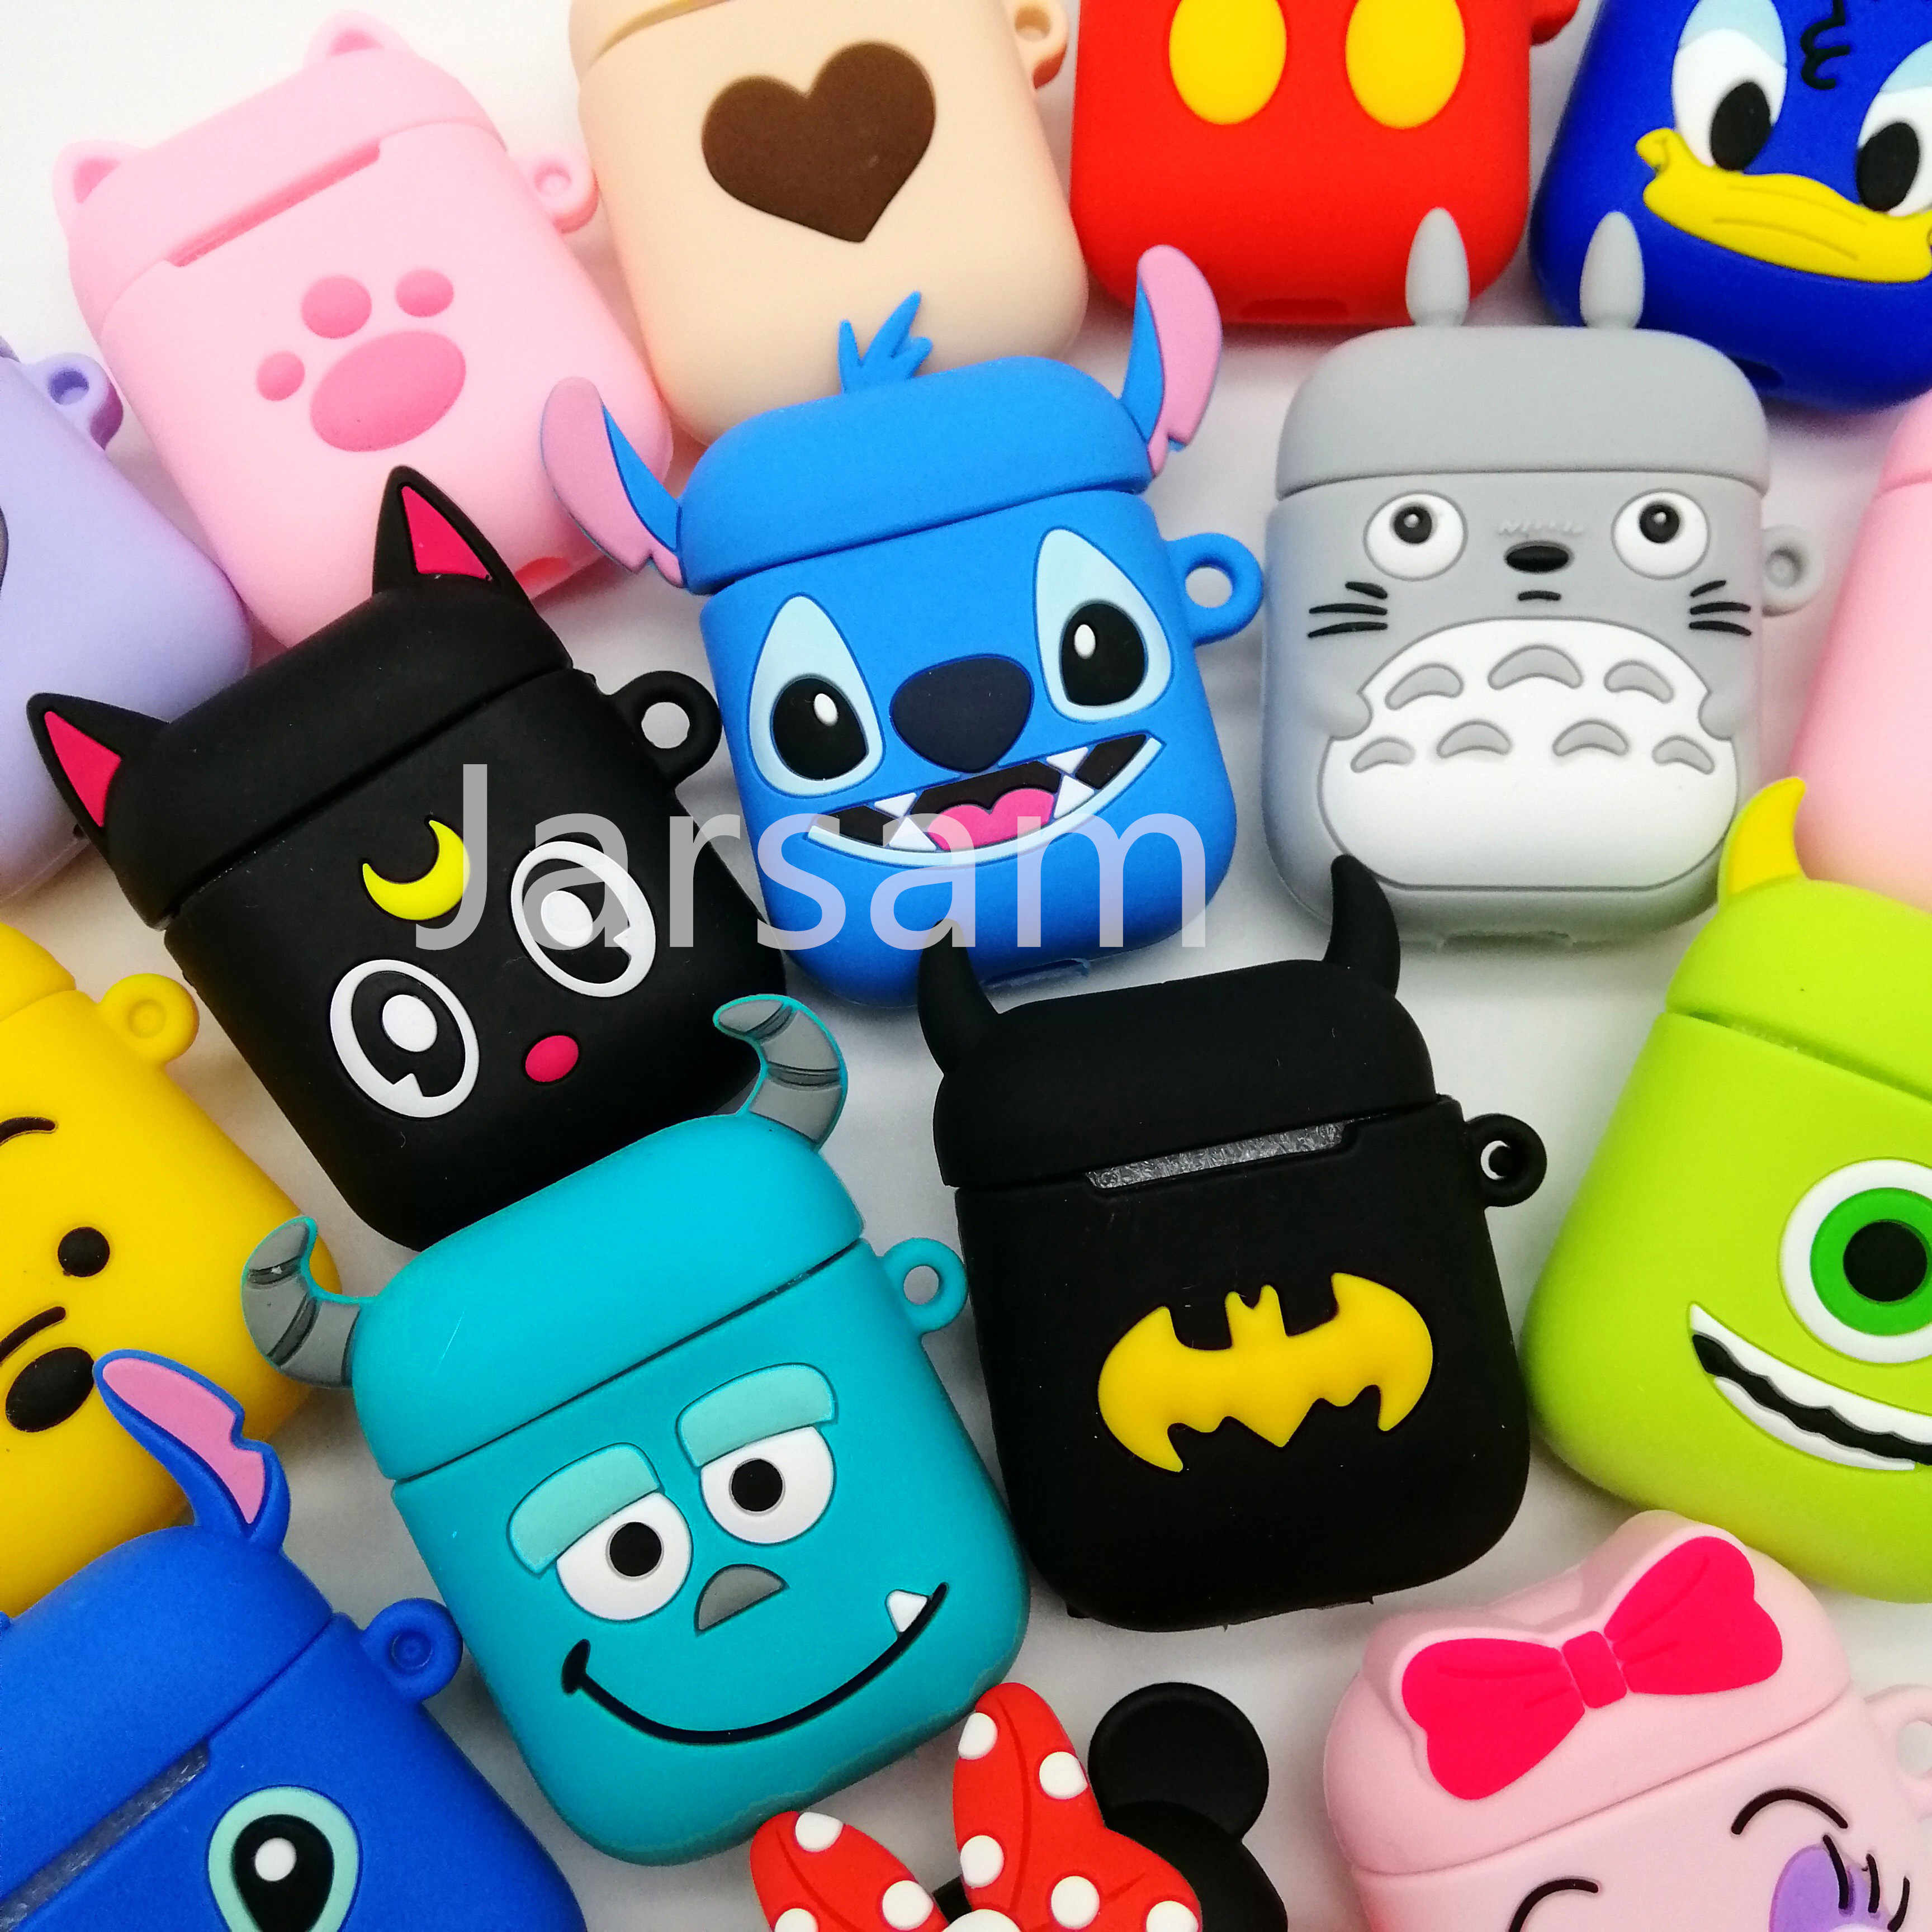 Cute Cartoon Wireless Earphone Case For Apple AirPods 2 Silicone Charging Headphones Case for Airpods Protective Cover